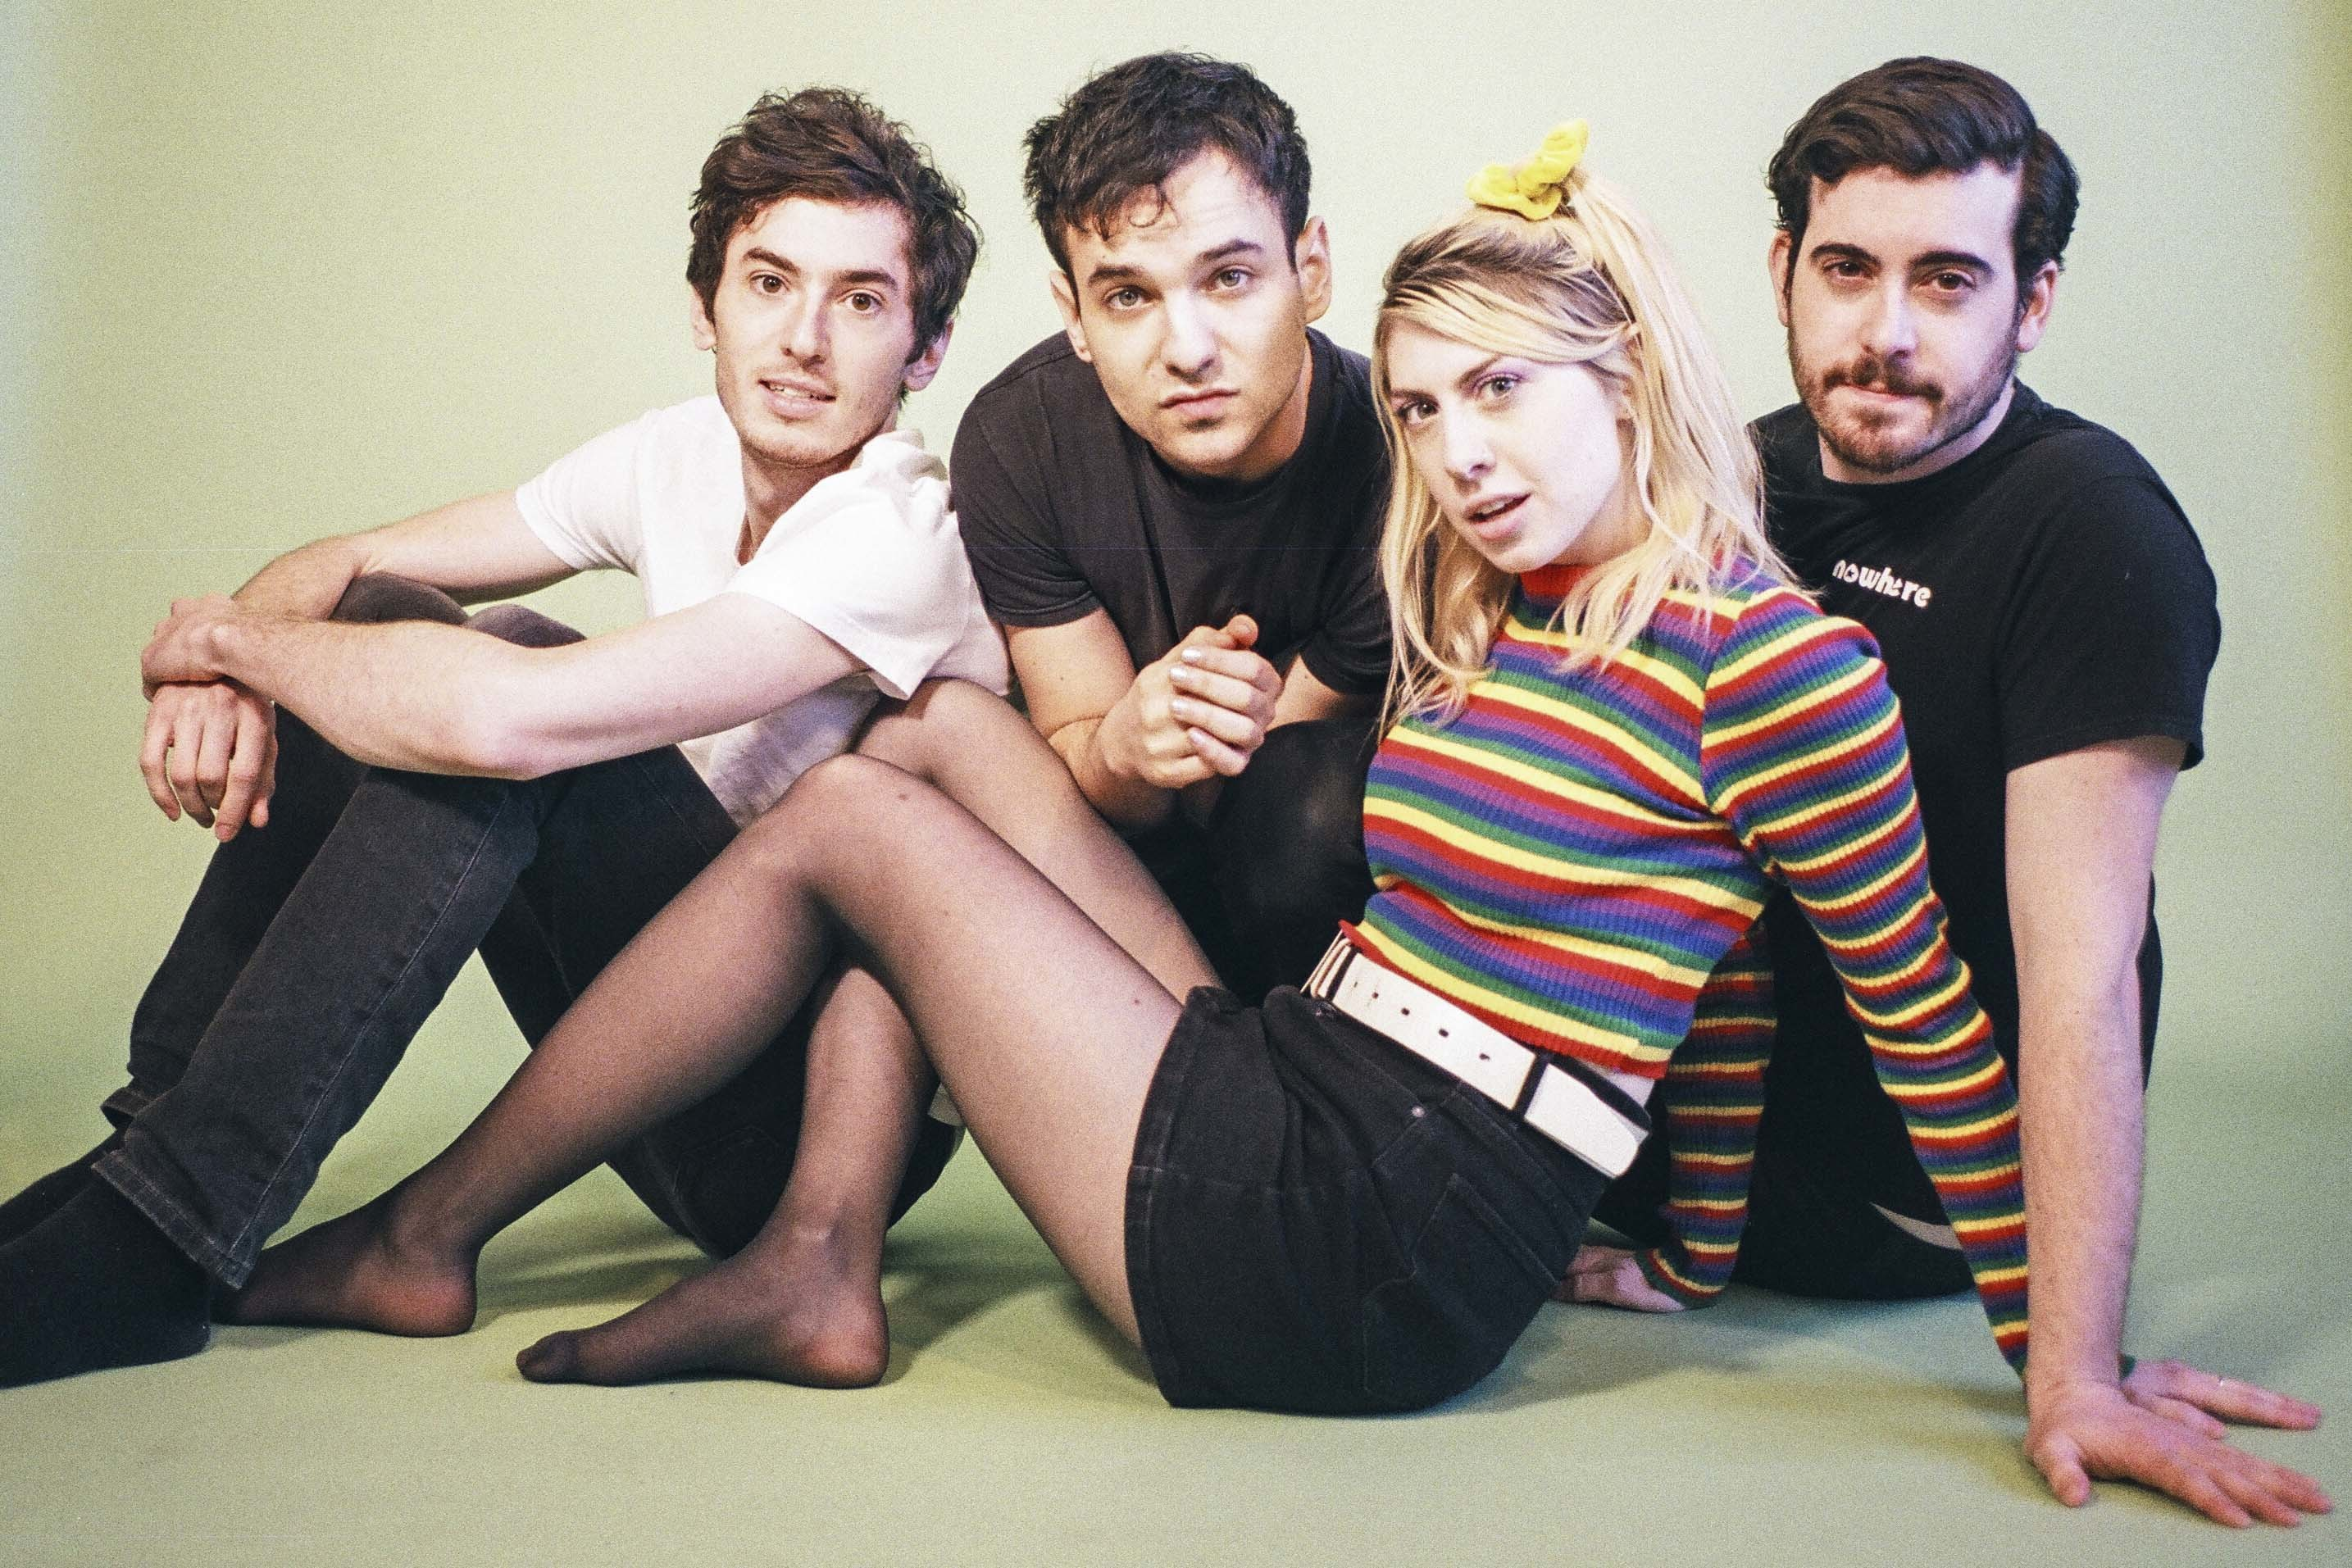 Listen to Charly Bliss cover 'All I Want For Christmas Is You'